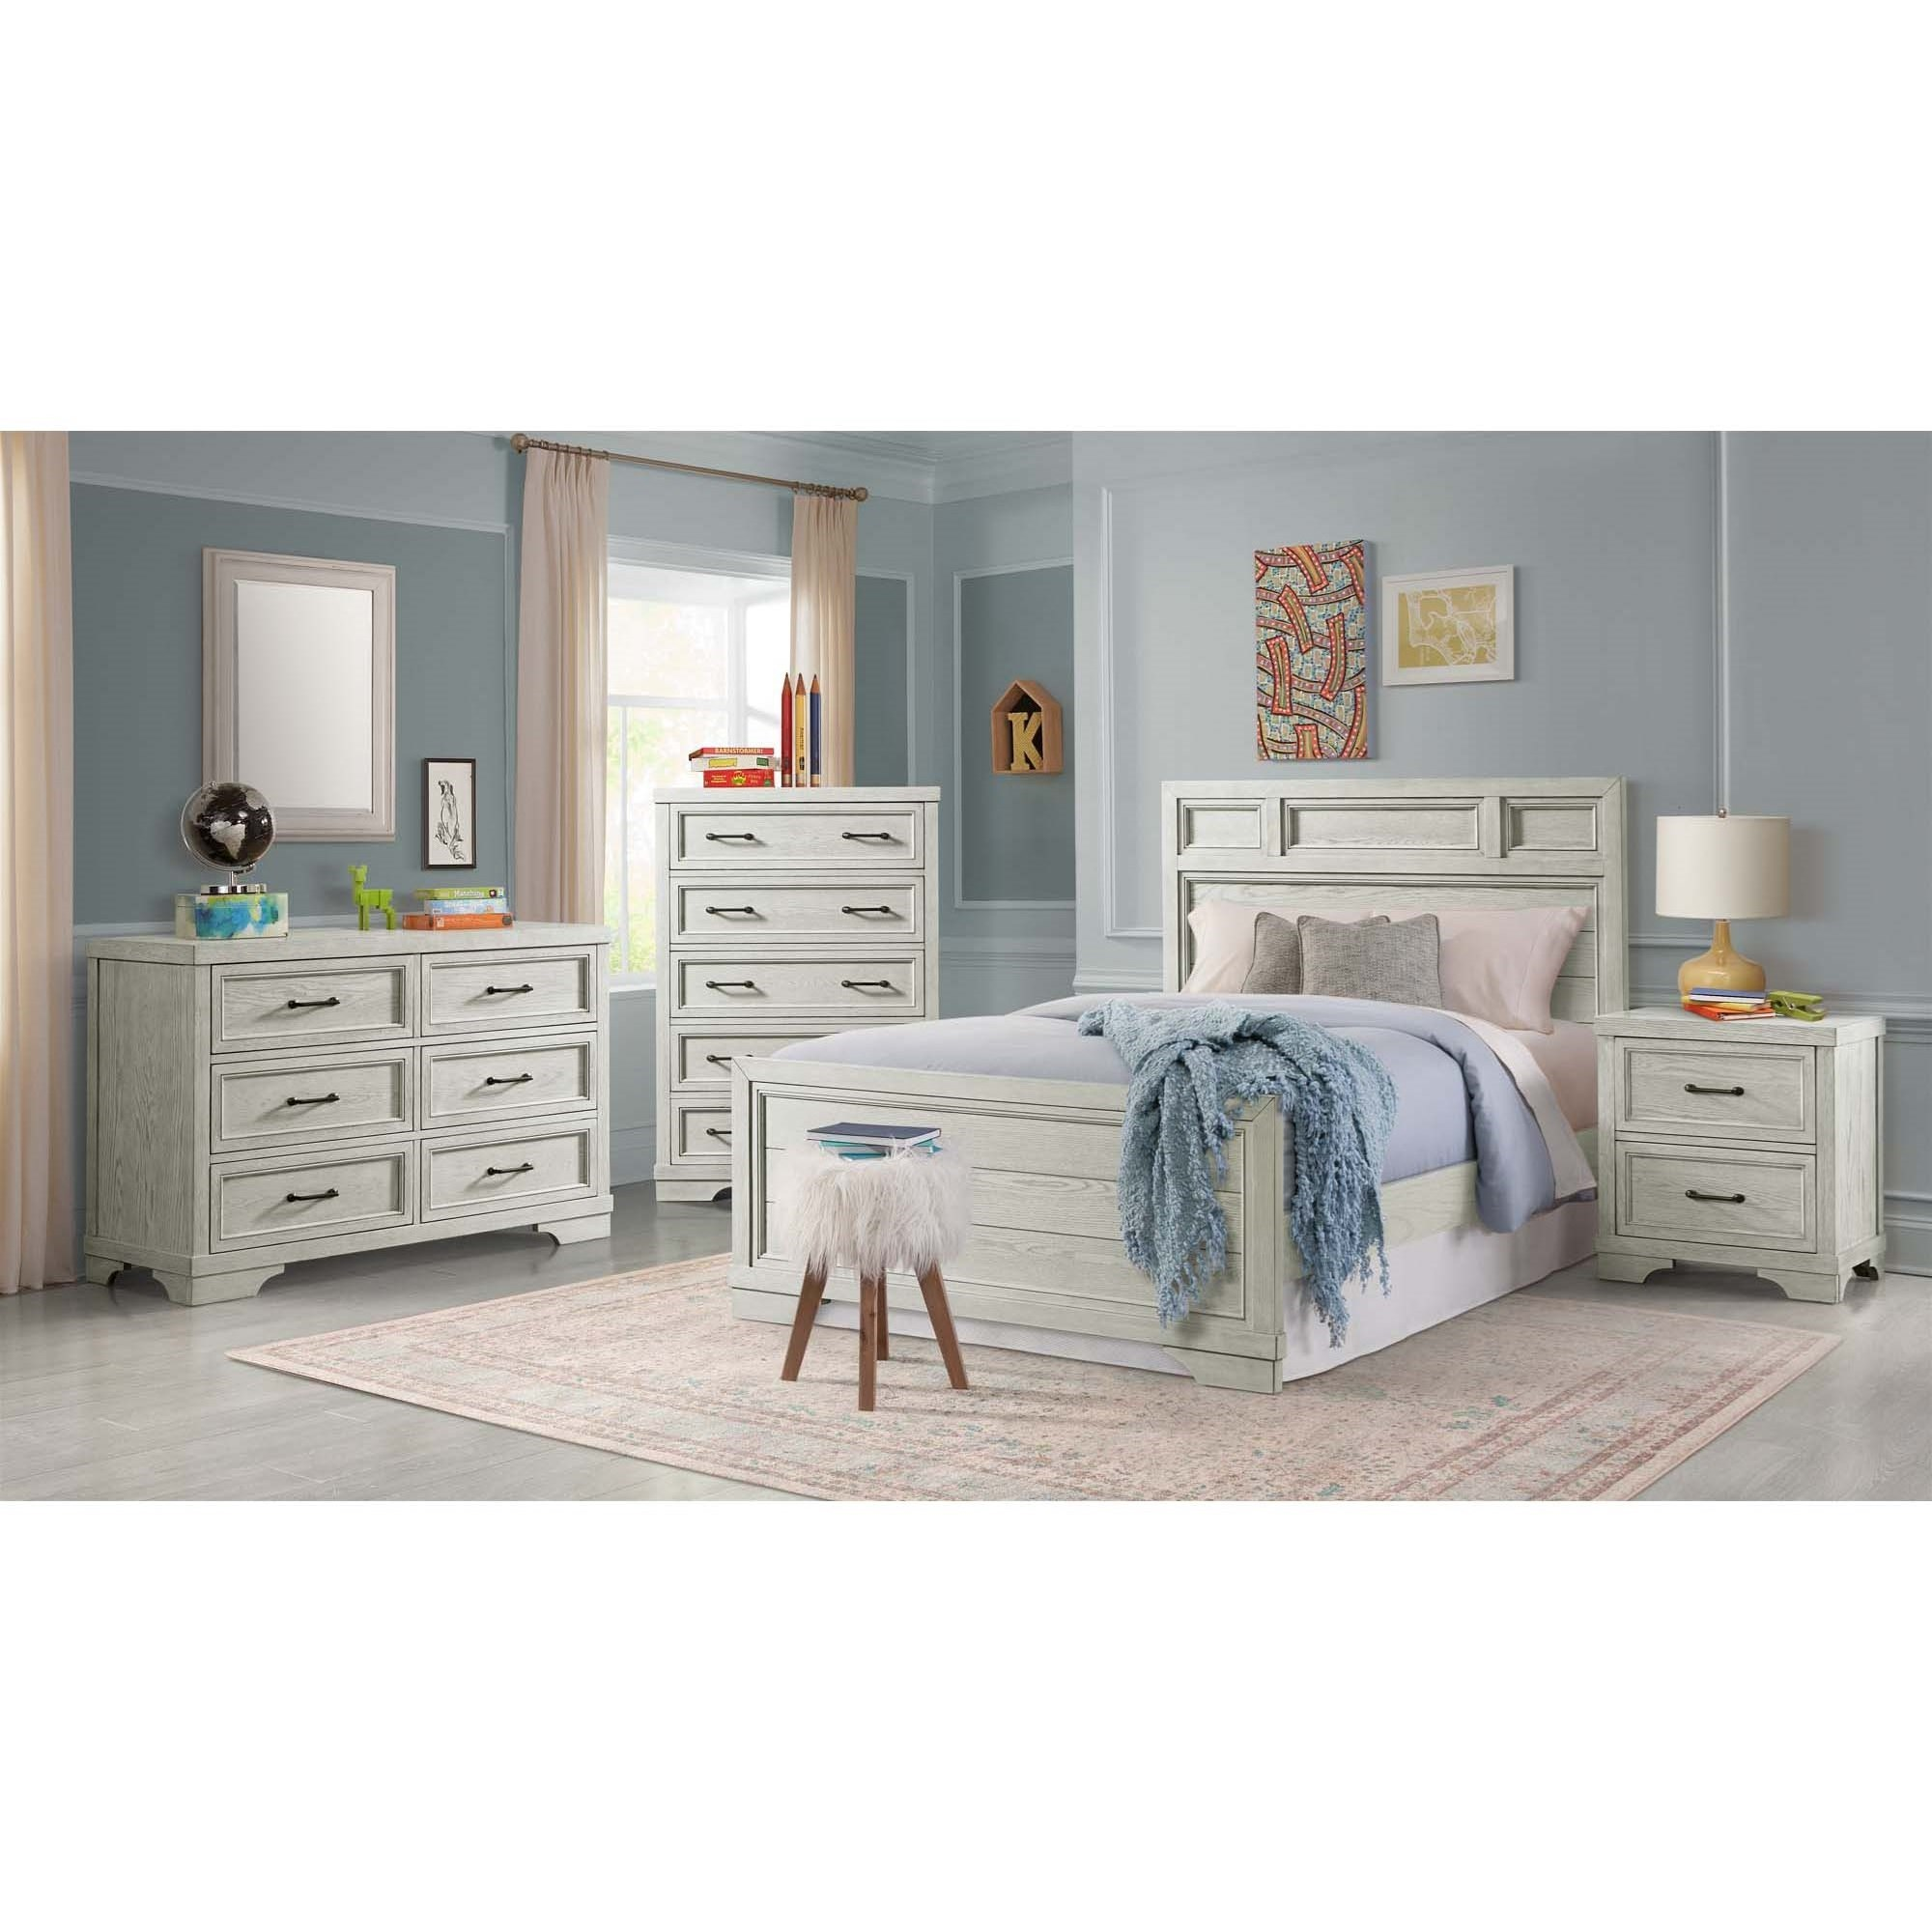 Foundry Full Bedroom Group by Westwood Design at Virginia Furniture Market